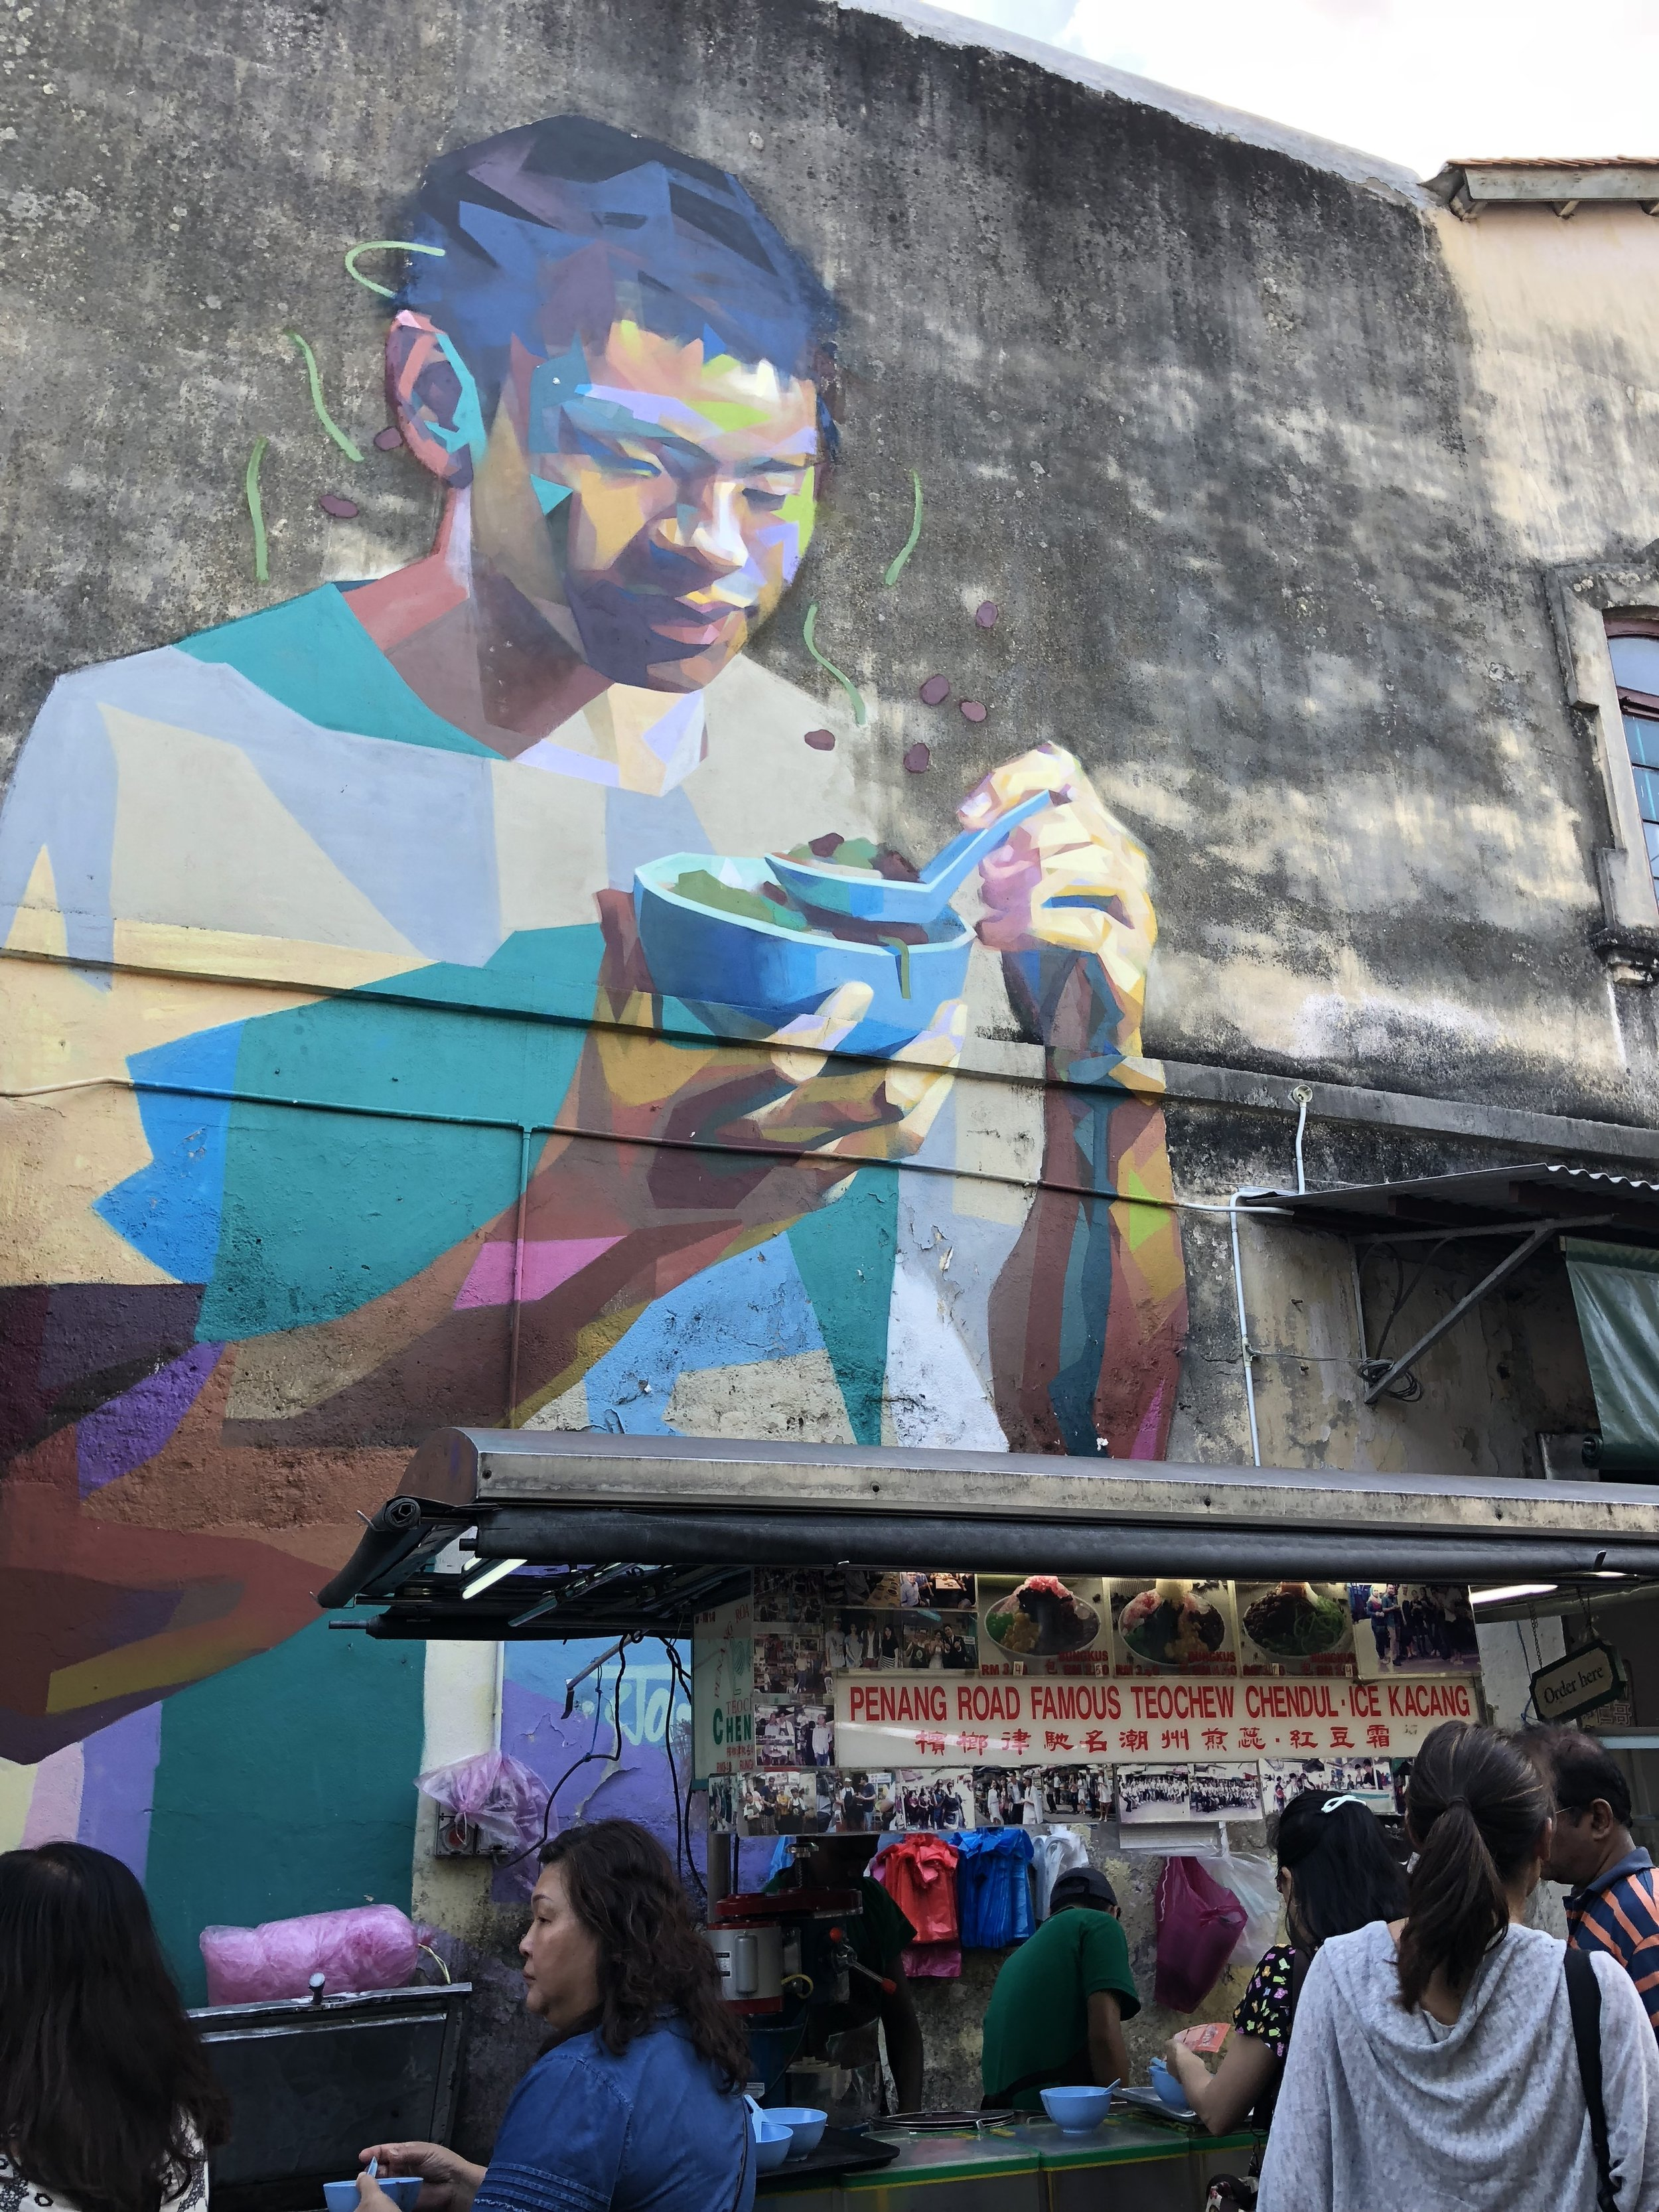 Above the street cart selling chendul, a noodle and tea beverage, is this beautiful mural. A great treat—both the chendul and the mural!